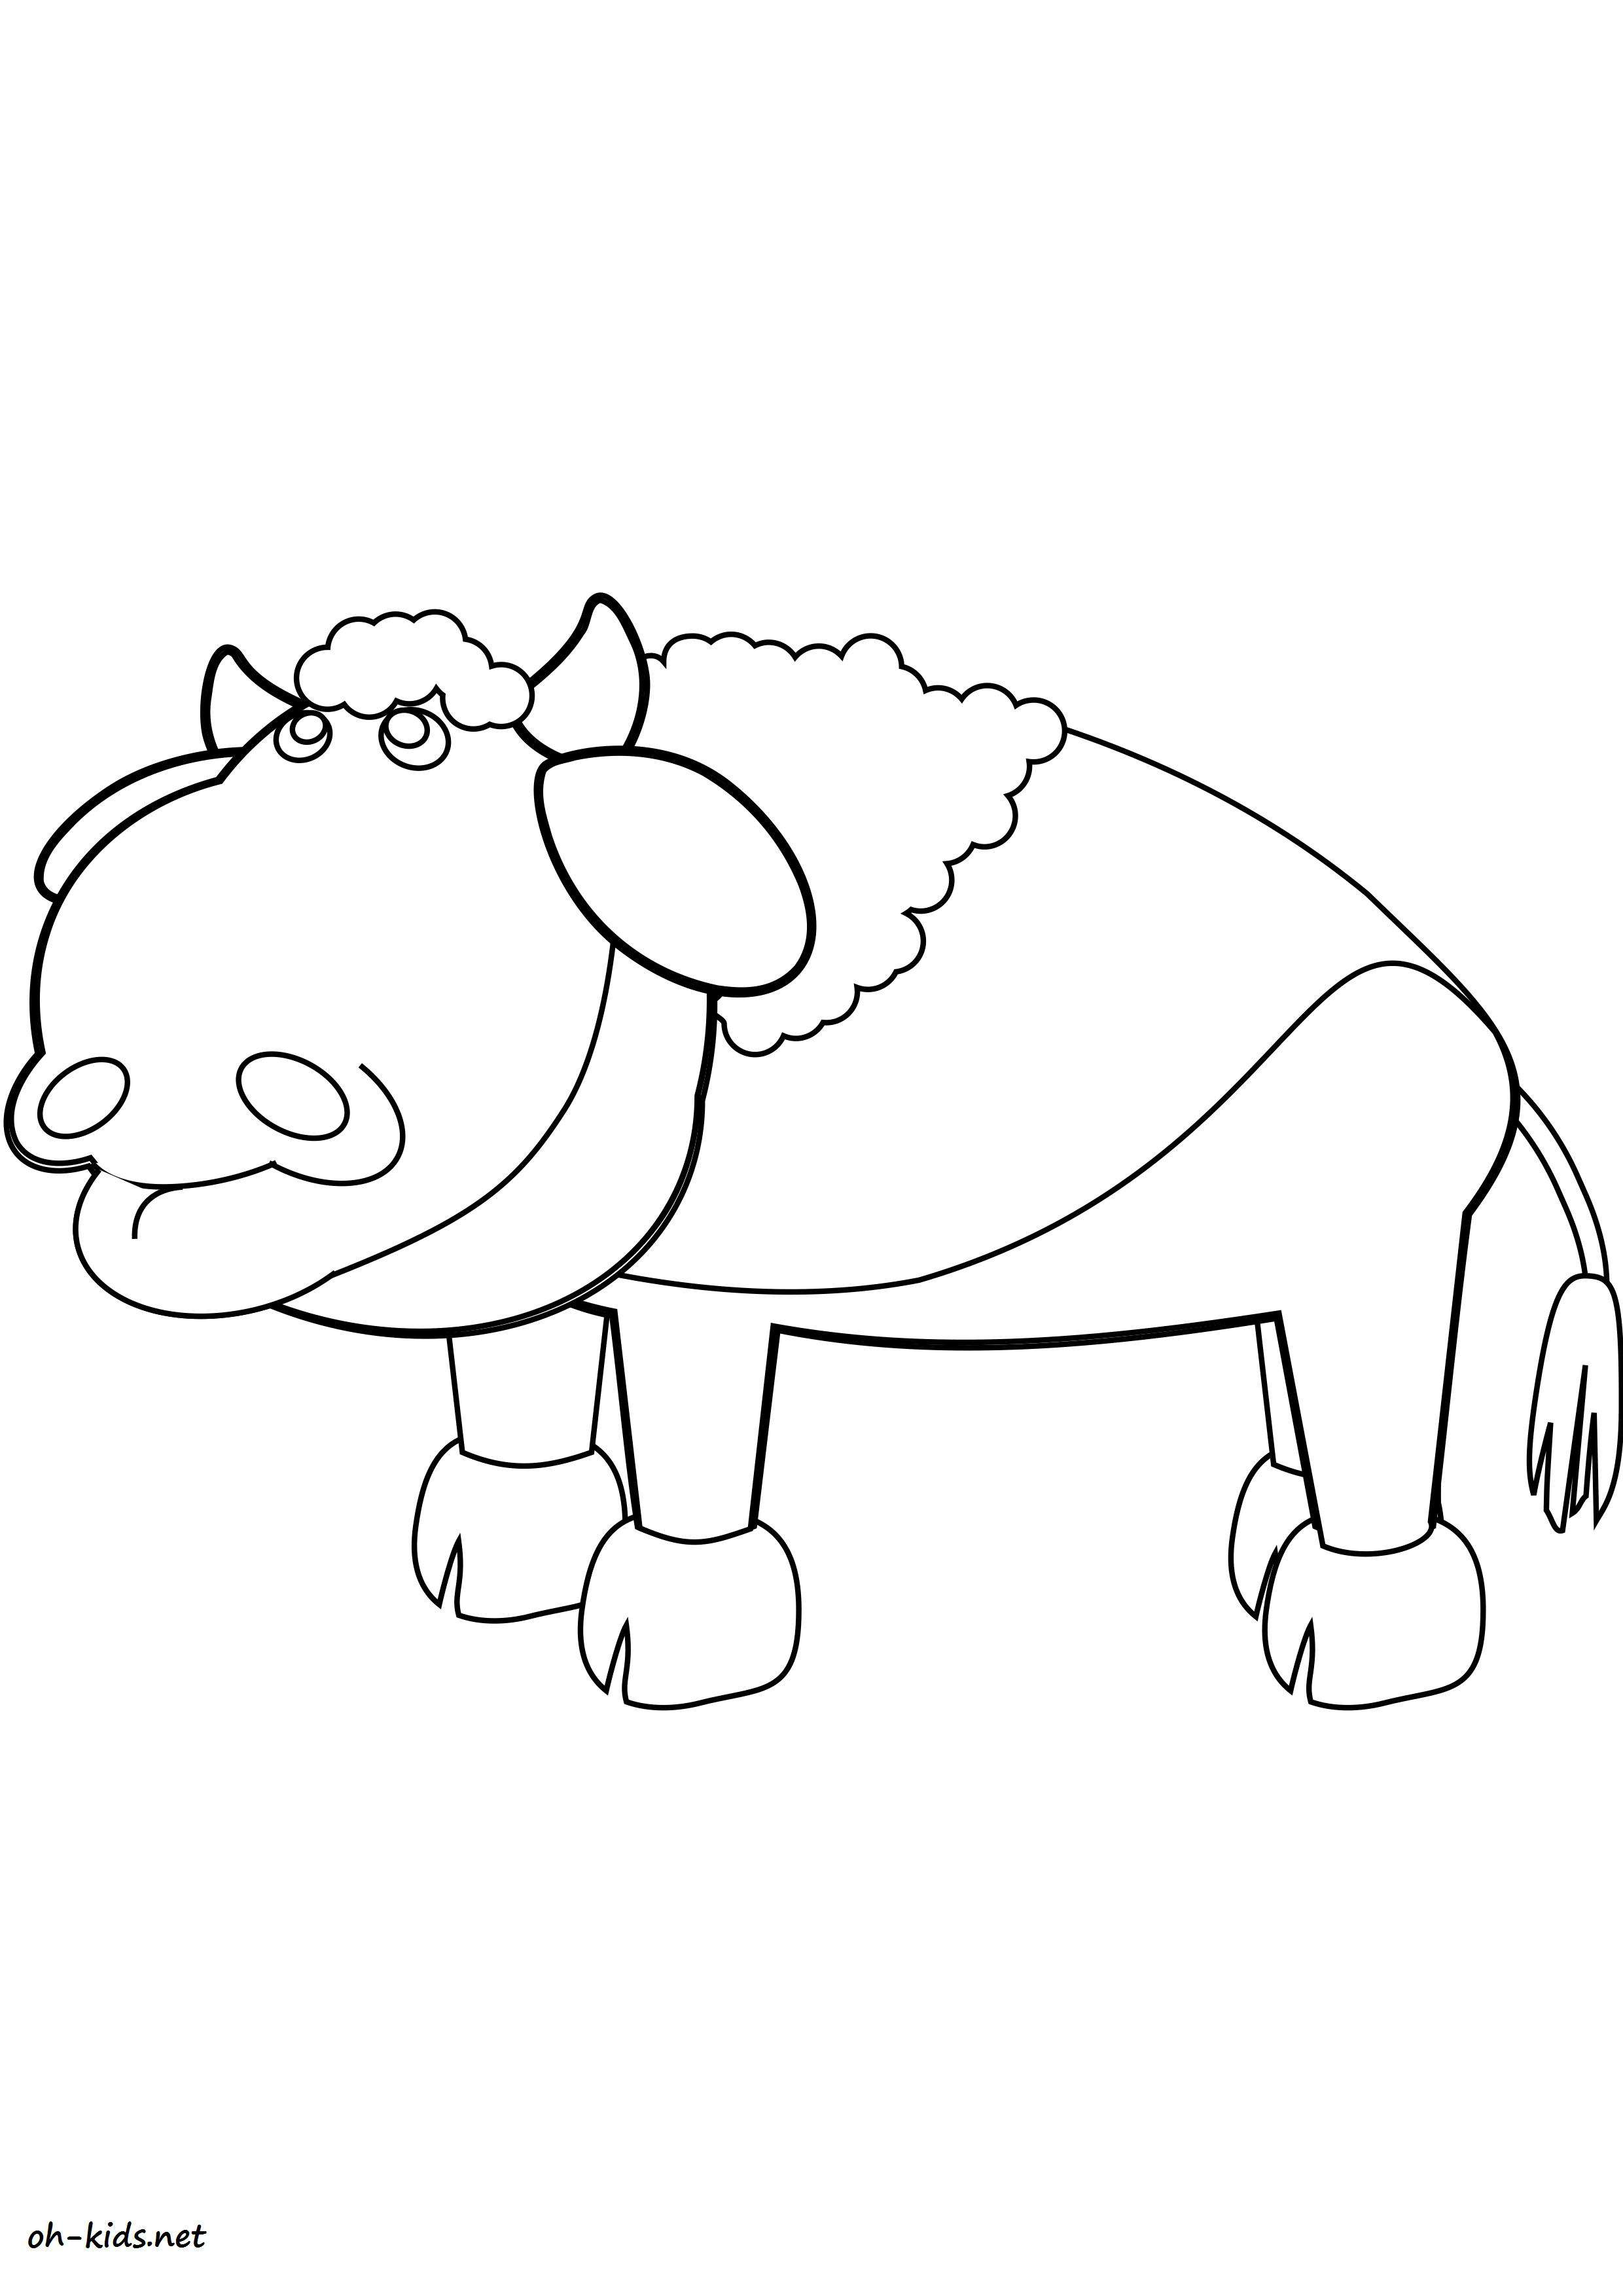 Coloriage bison page 2 of 2 oh kids fr - Coloriage bison ...